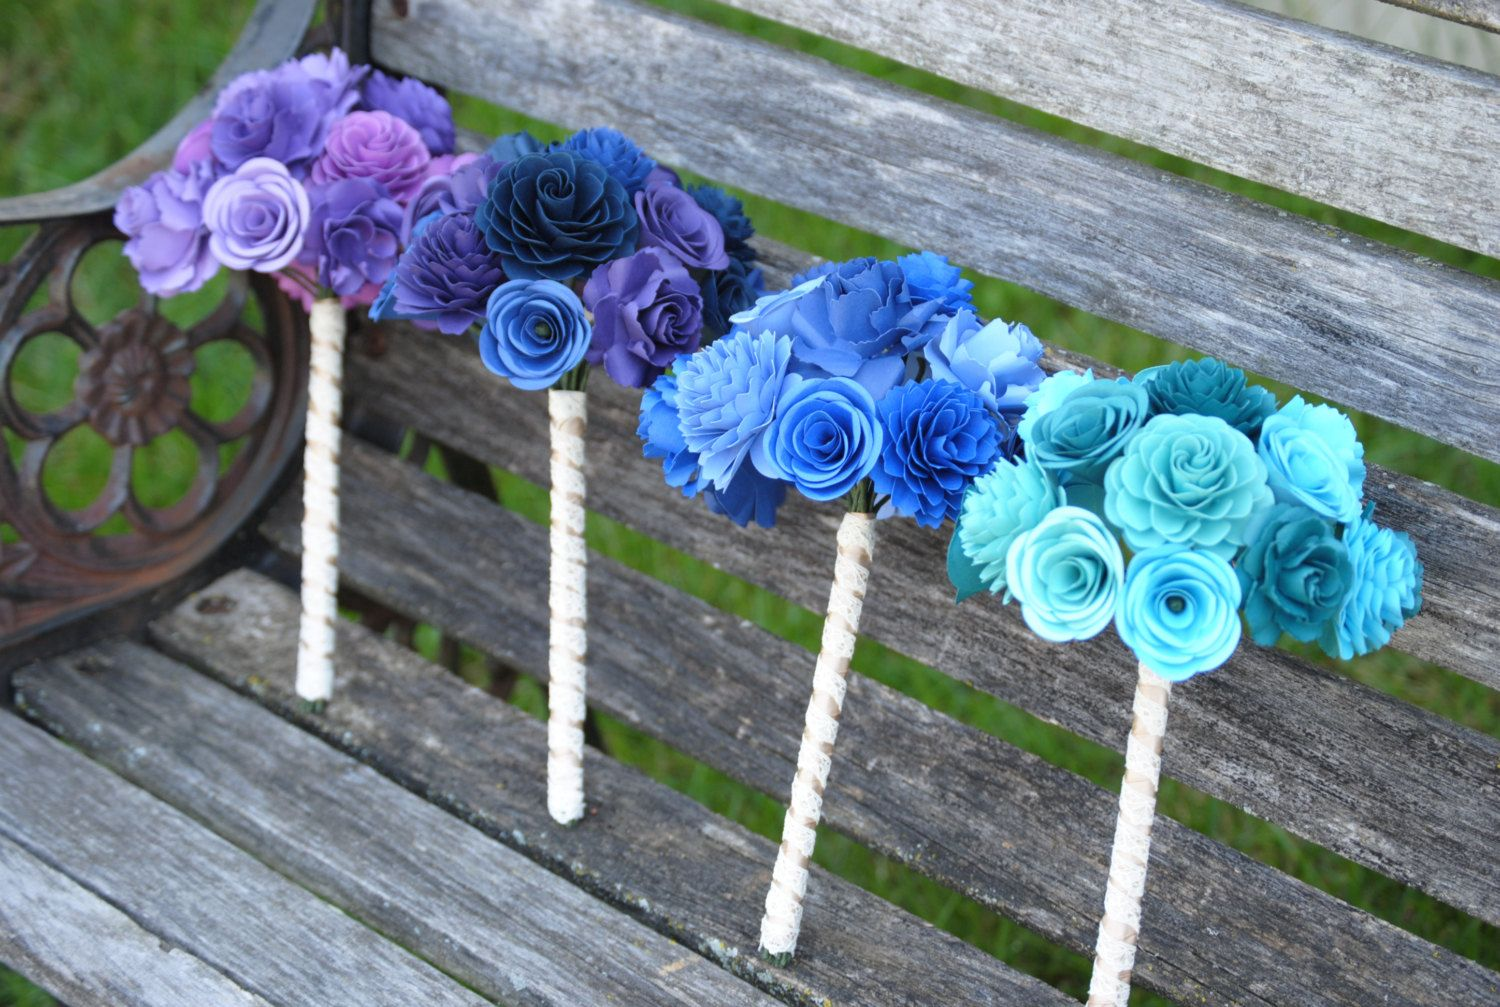 Custom Bridal & Bridesmaid Bouquets. Your Choice Of Colors, Paper, Flower Styles, Books, Etc. by JustCyndy on Etsy